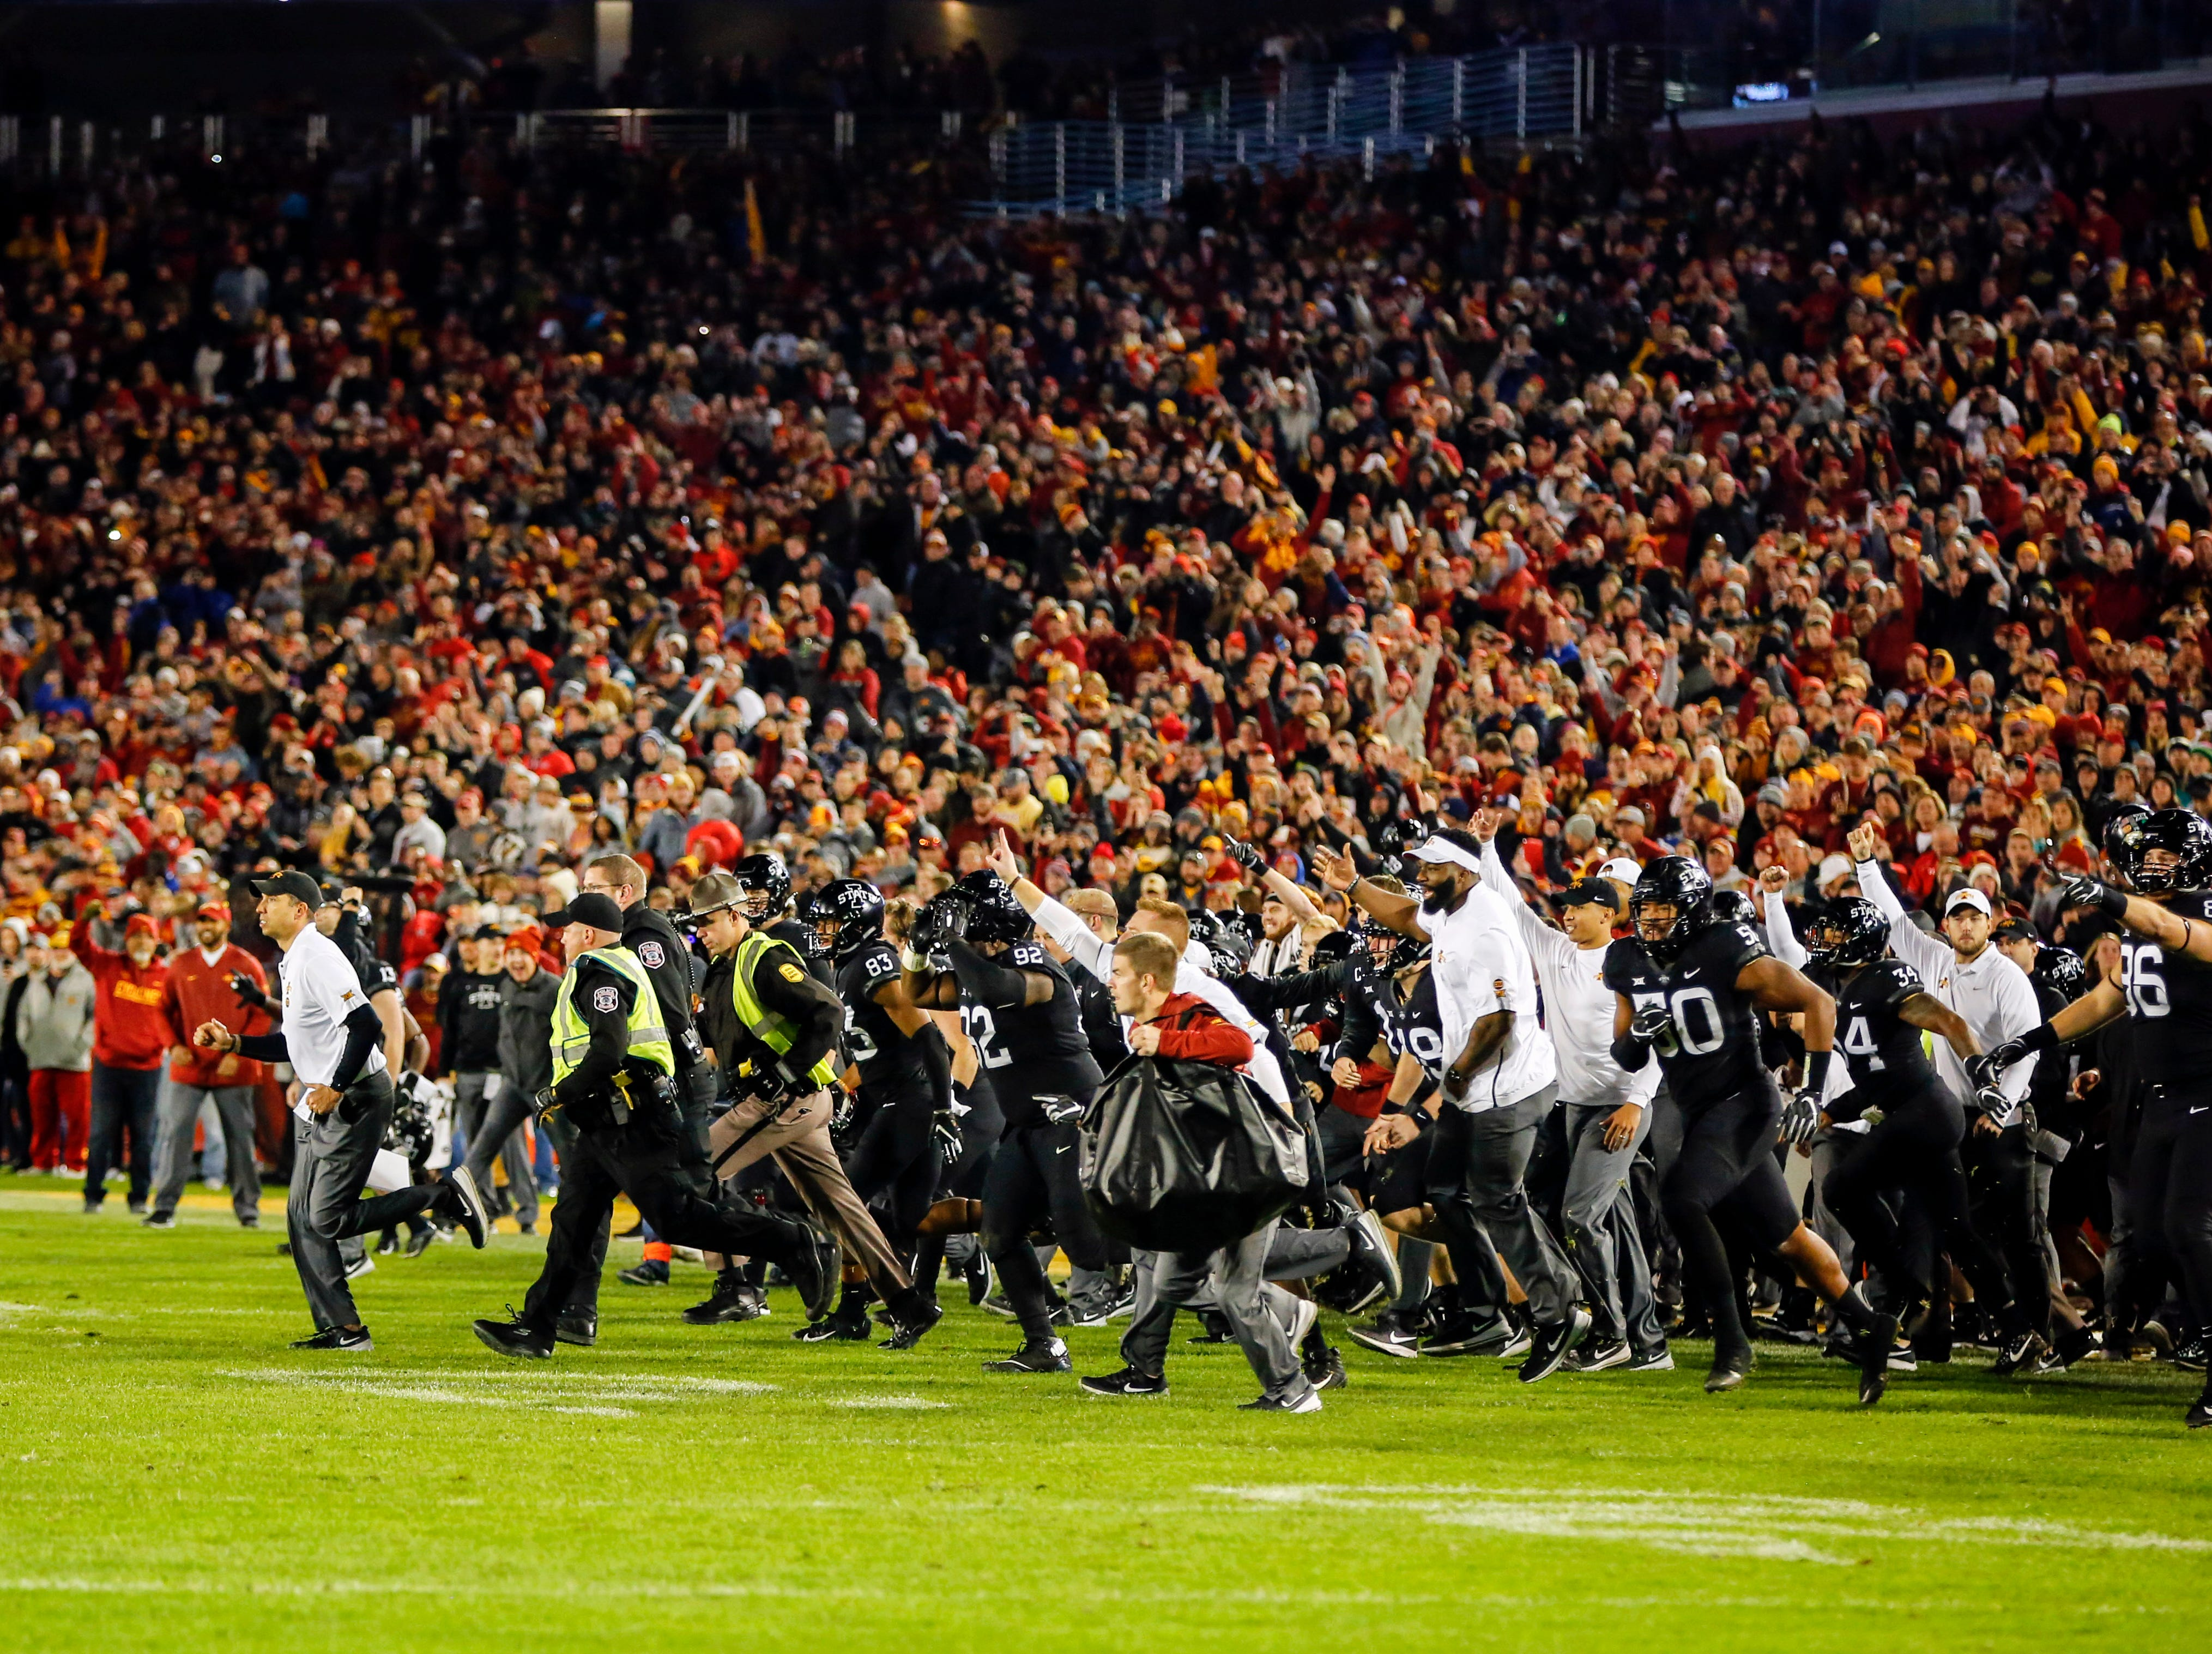 Iowa State players and staff take the field after defeating West Virginia at Jack Trice Stadium Saturday, Oct. 13, 2018.